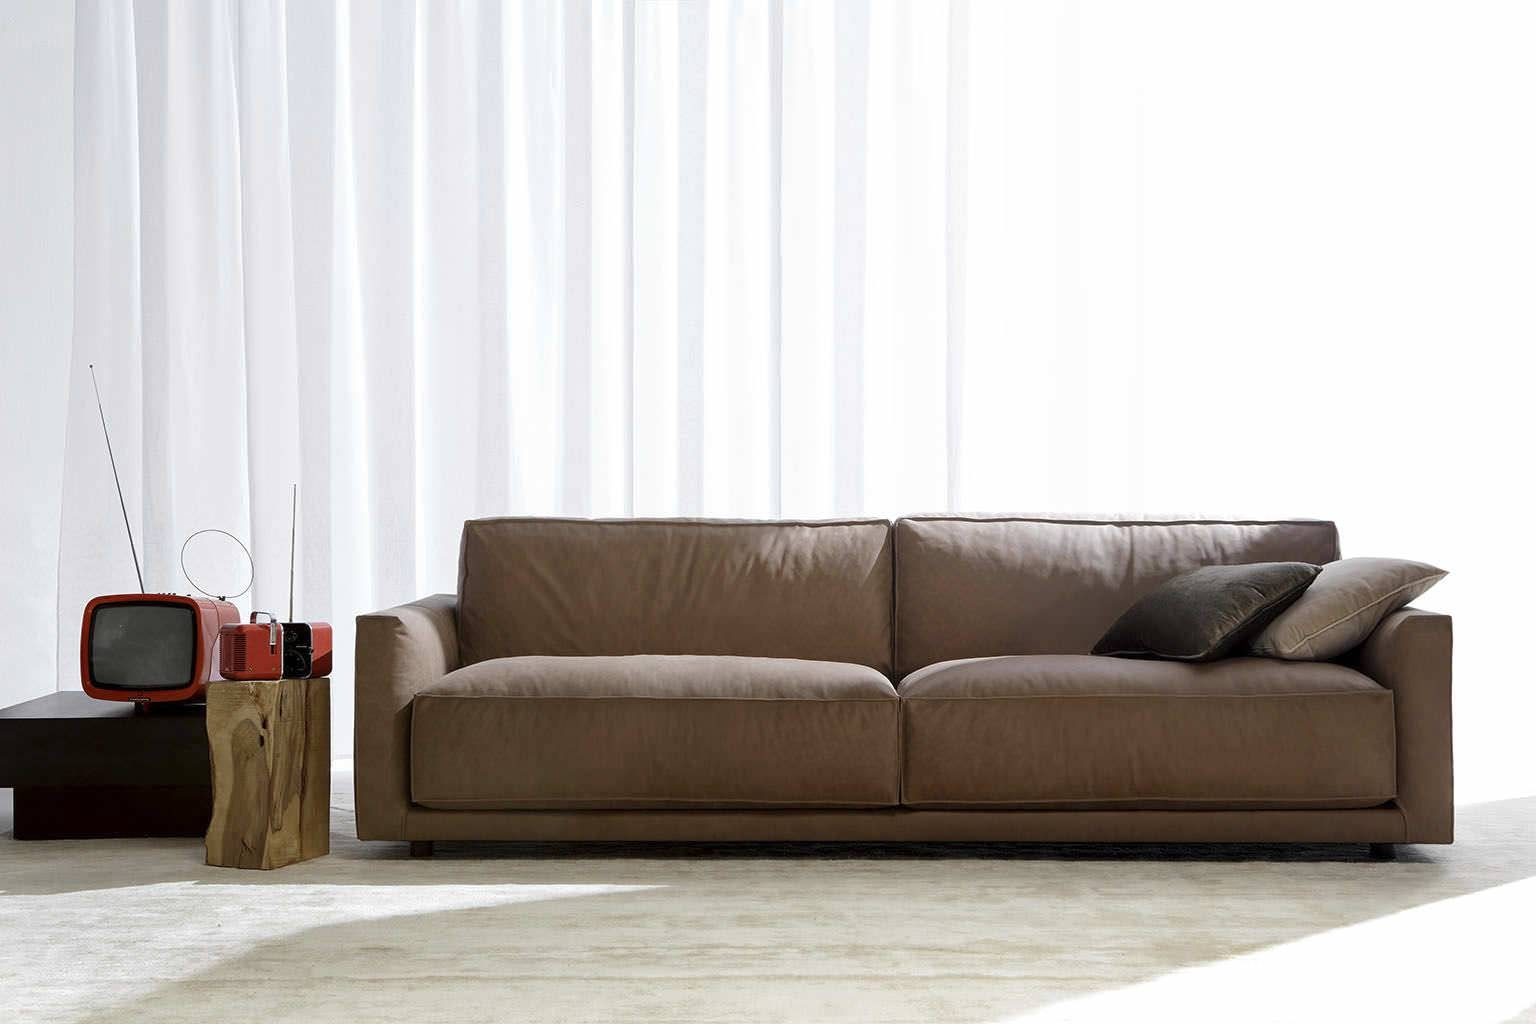 Sofa Design Ideas. Black Modern Leather Sofa In Brown Couch pertaining to Contemporary Brown Leather Sofas (Image 15 of 15)